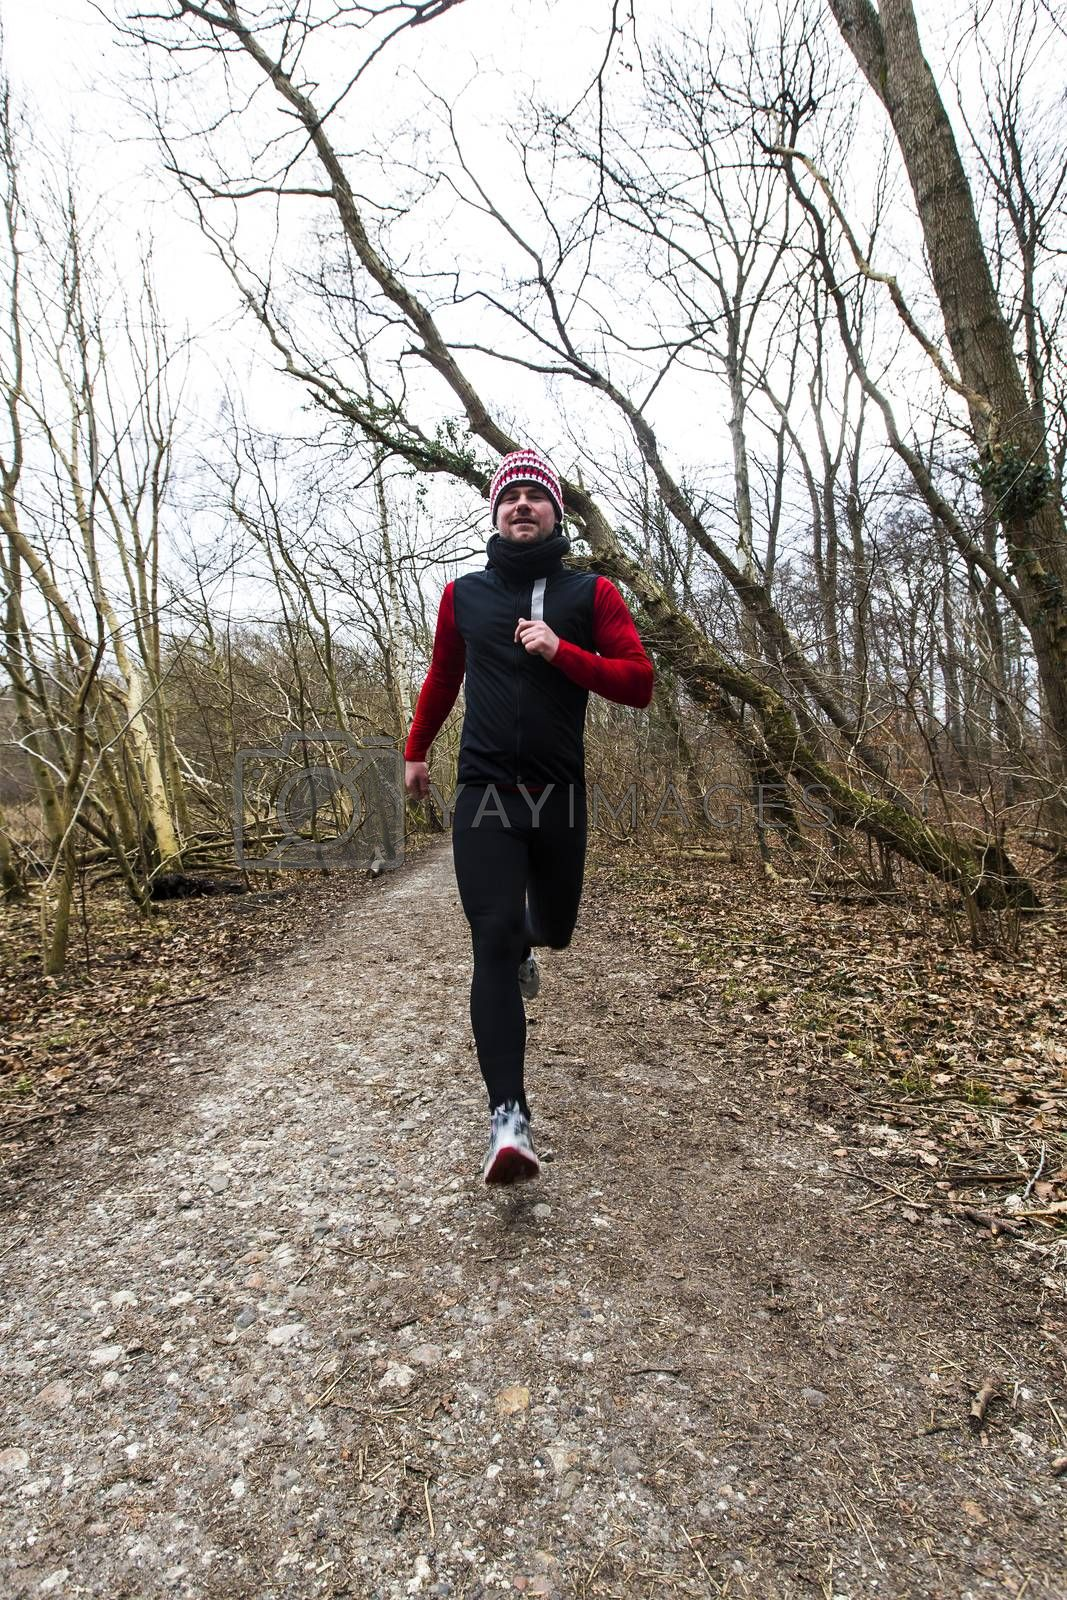 A man running outdoors in a forest